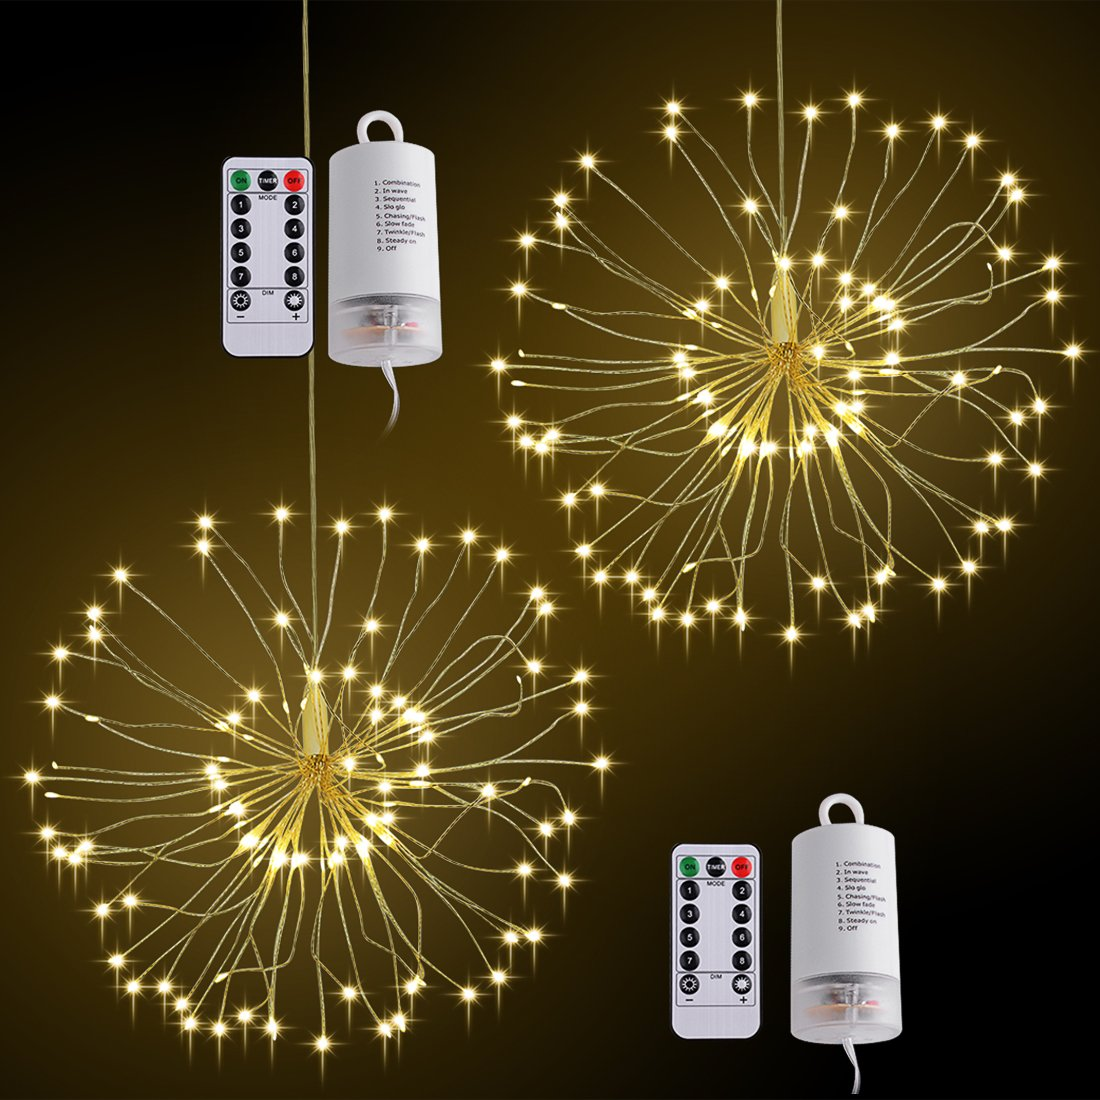 LED String Light,2 Pack Battery Operated Hanging Starburst Light 120 LED Bouquet Shape lights,Fairy Twinkle Light 8 Modes Dimmable with Remote Control,Decoration for Outdoor Home Patio(Warm White) by Elitlife (Image #1)